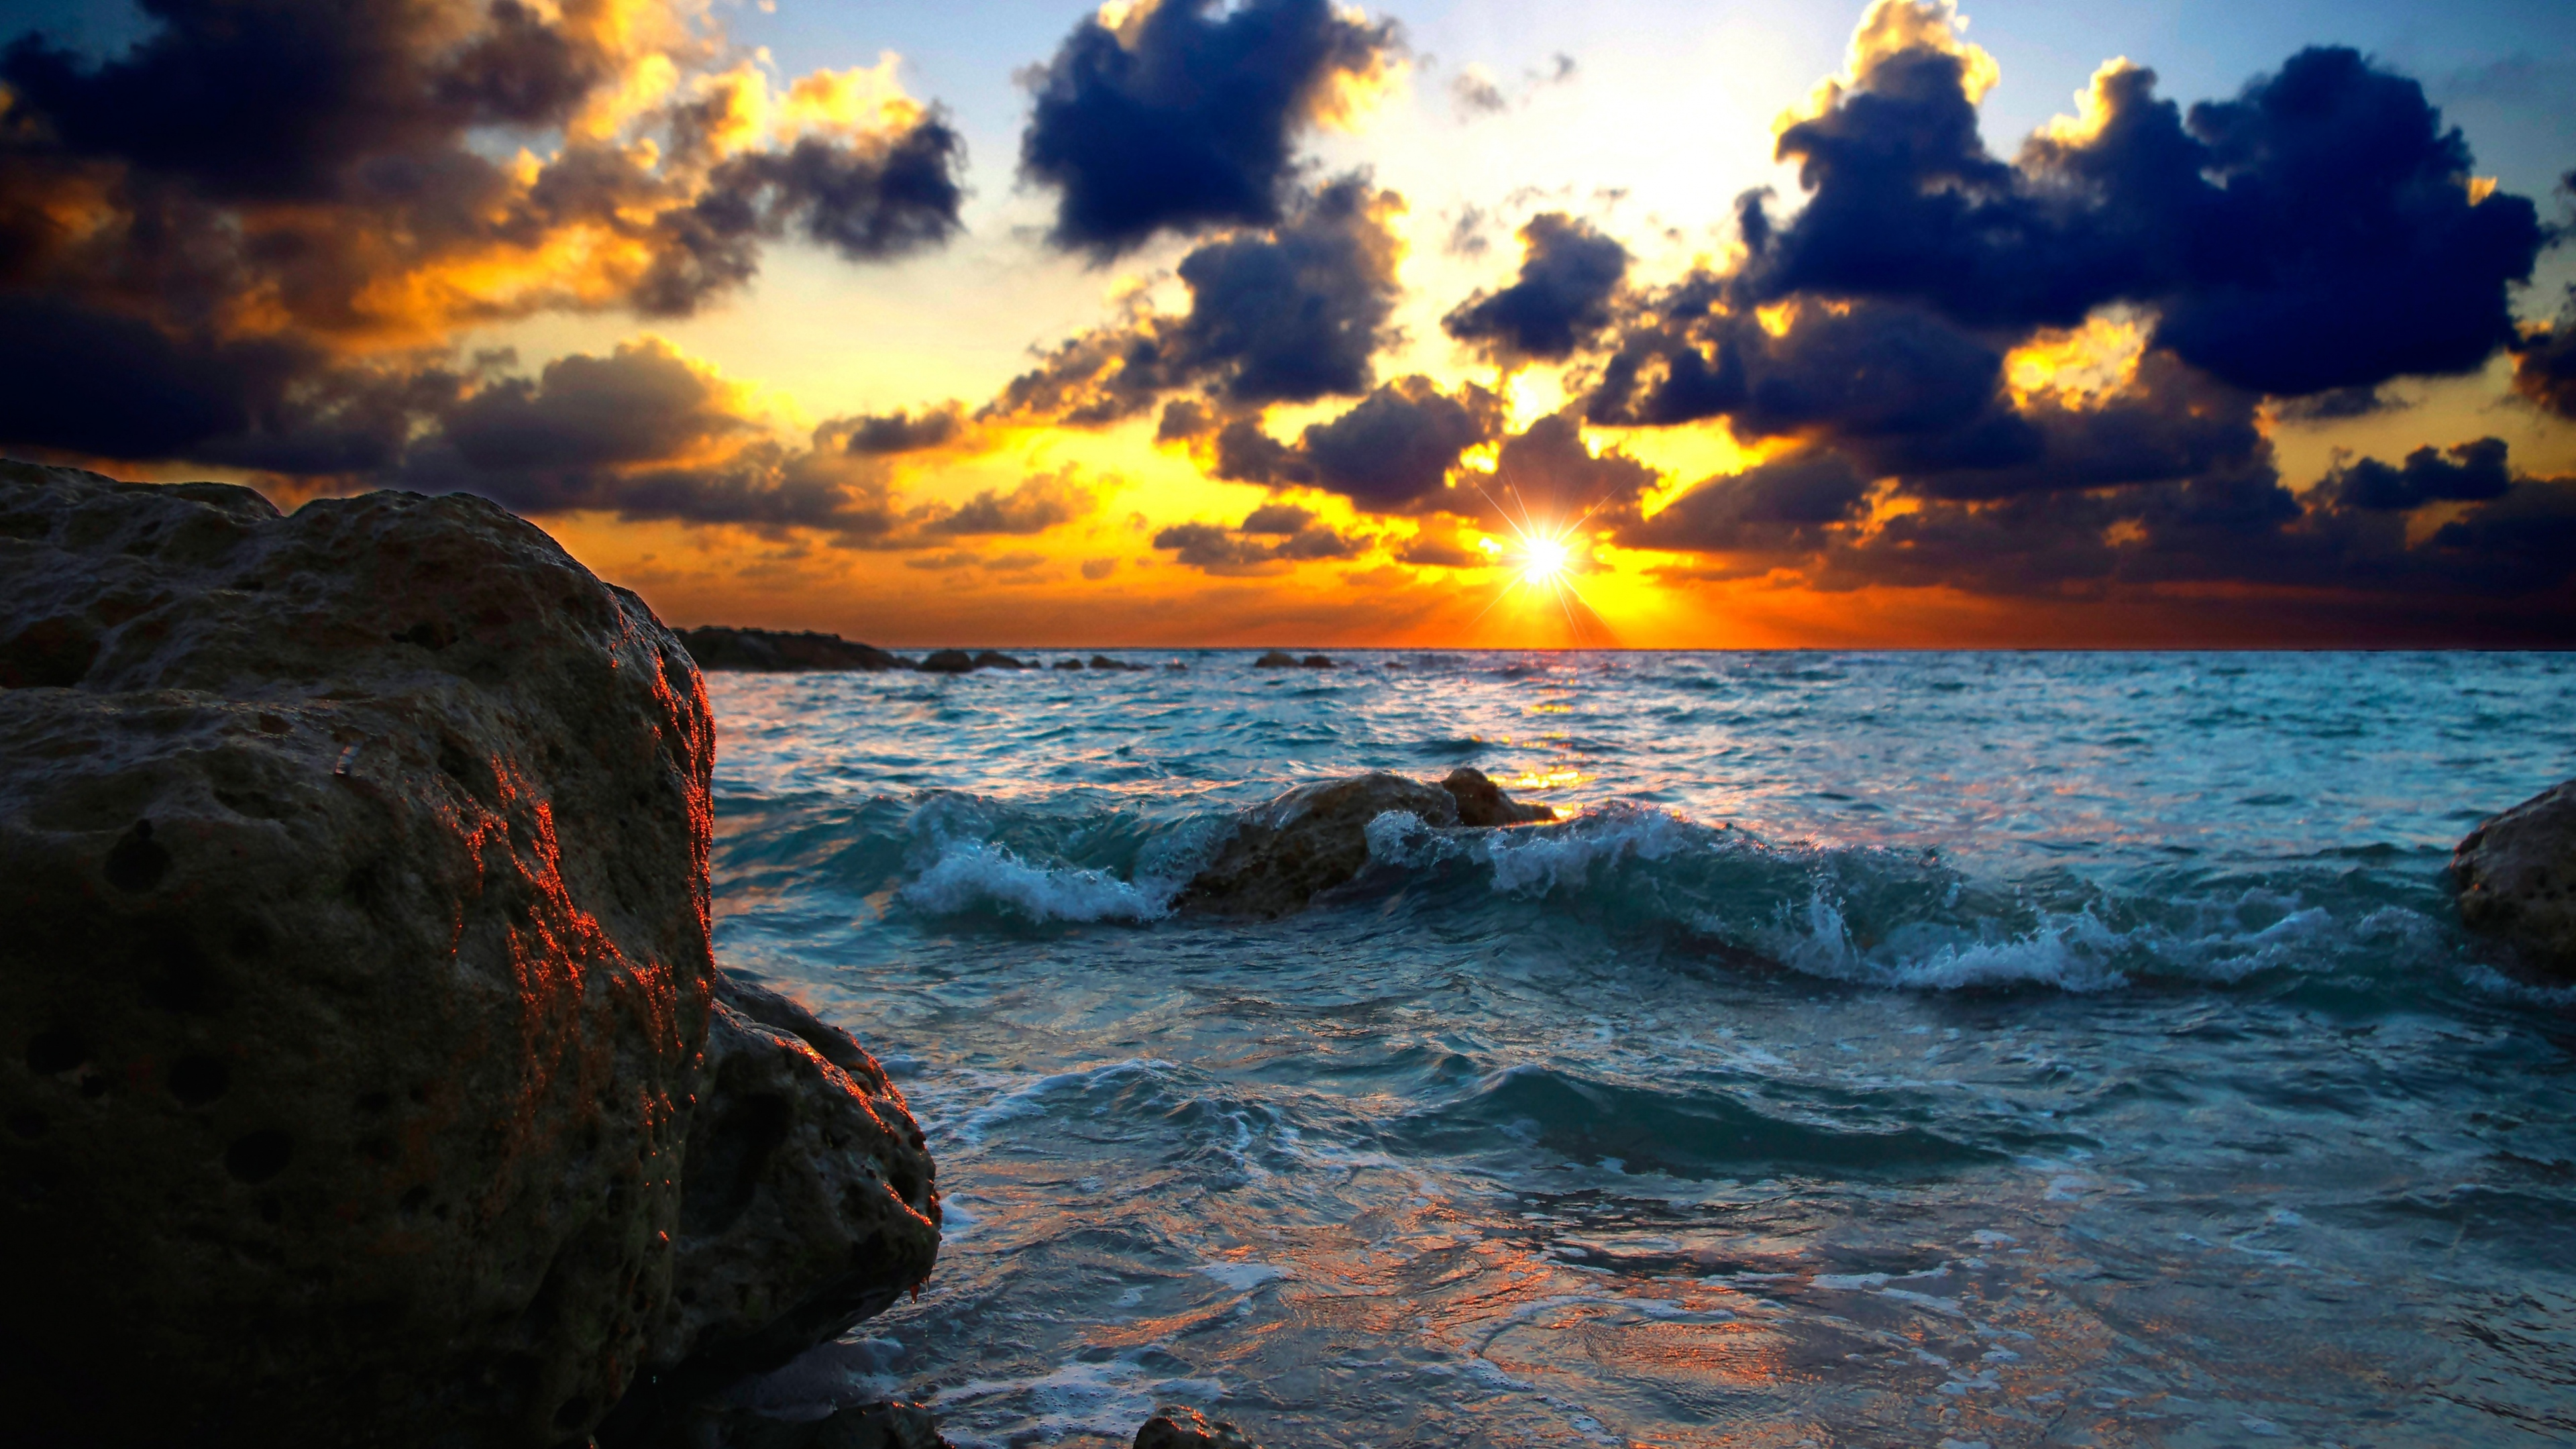 hd sea sunset nature wallpaper #3069